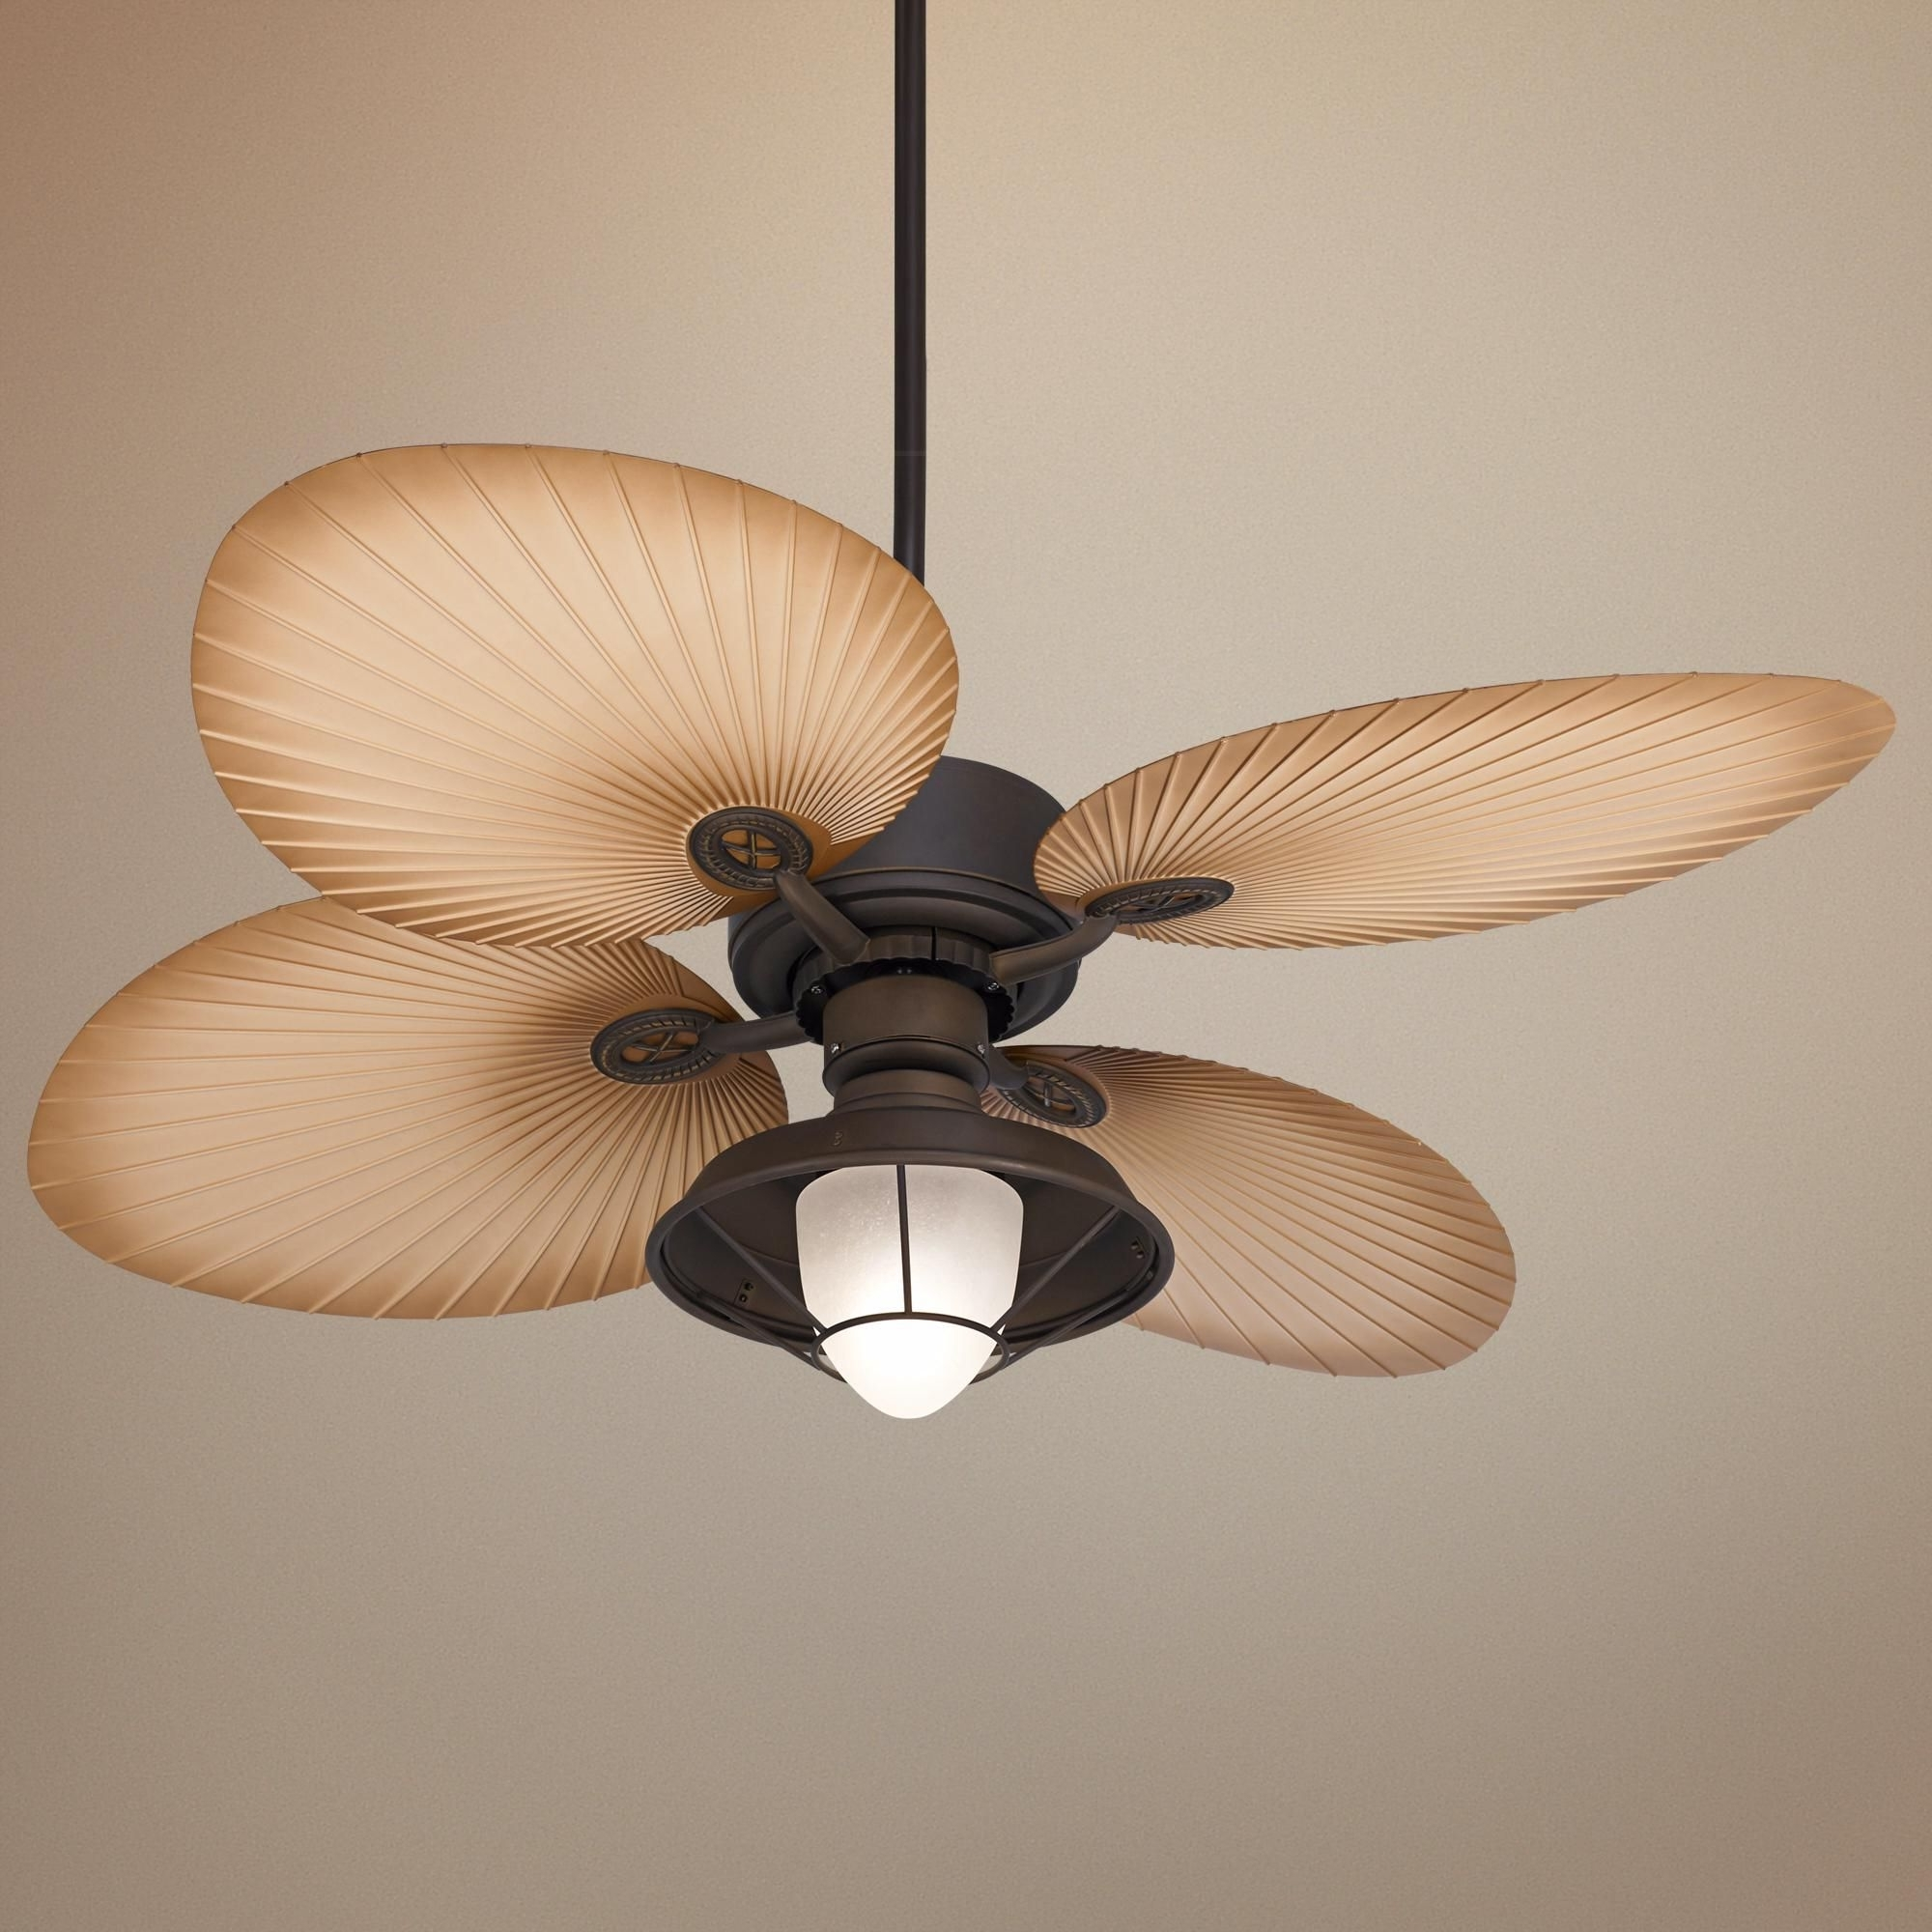 "52"" Casa Vieja Aerostat Wide Palm Bronze Outdoor Ceiling Fan Pertaining To Most Recently Released Casa Vieja Outdoor Ceiling Fans (View 3 of 20)"